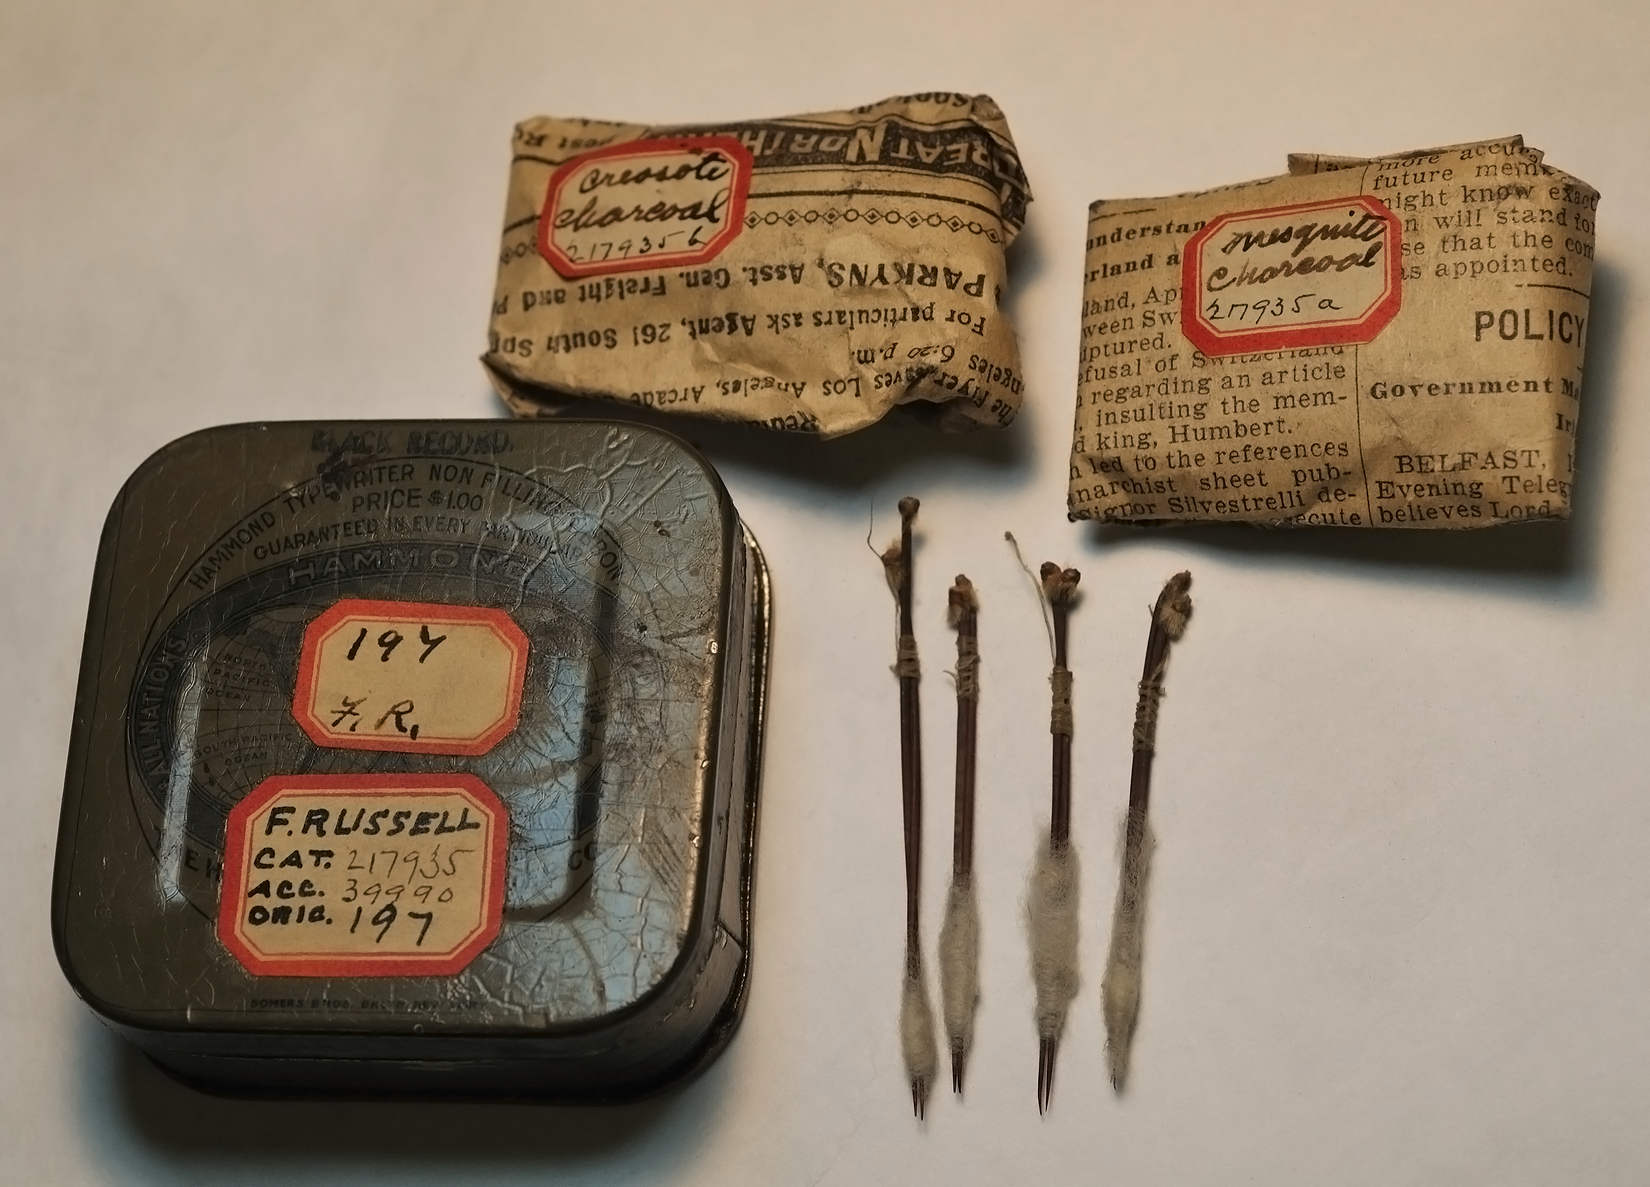 Akimel O'odham (Pima) tattooing kit from Arizona collected by Frank Russell, ca. 1900. Tattoos were made using cactus spines tied together with cotton. Creosote and mesquite charcoal were rubbed into the wounds. (Image courtesy Department of Anthropology, Smithsonian Institution)